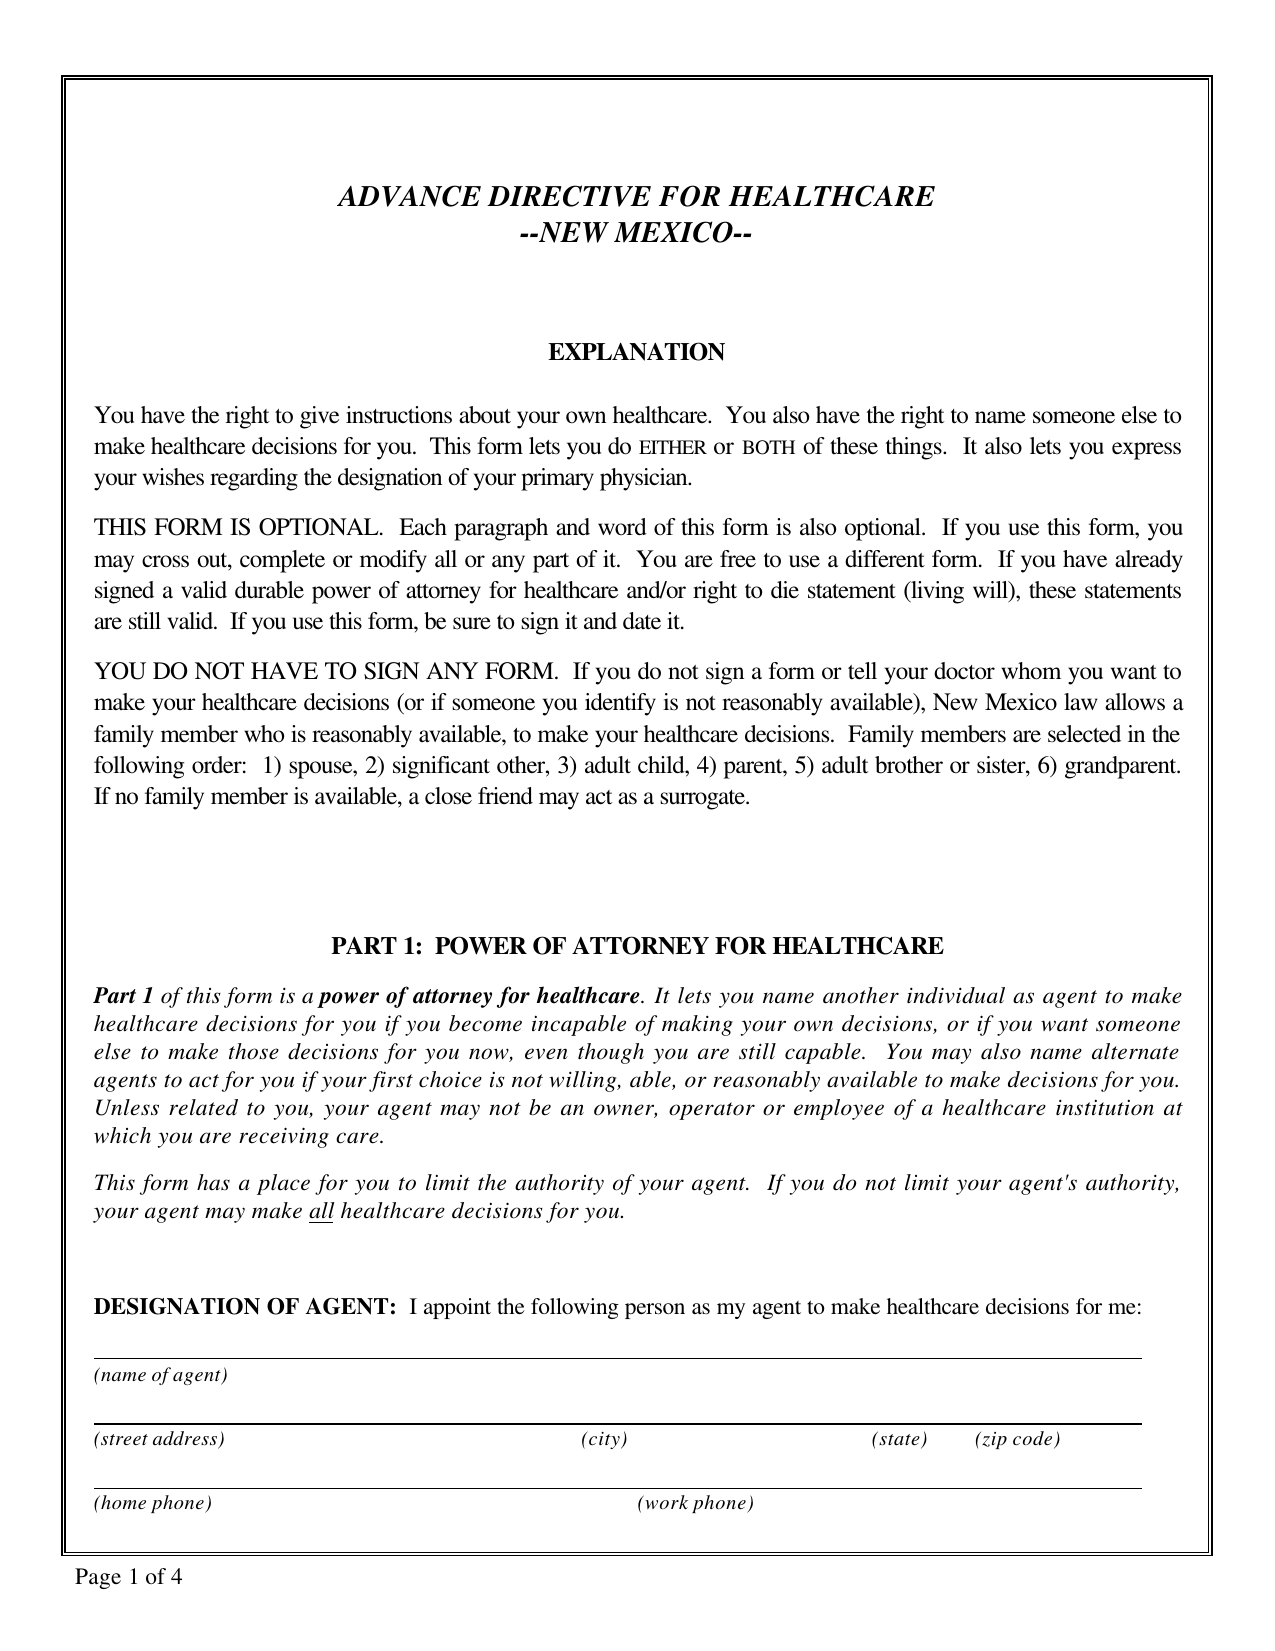 Download New Mexico Living Will Form Advance Directive